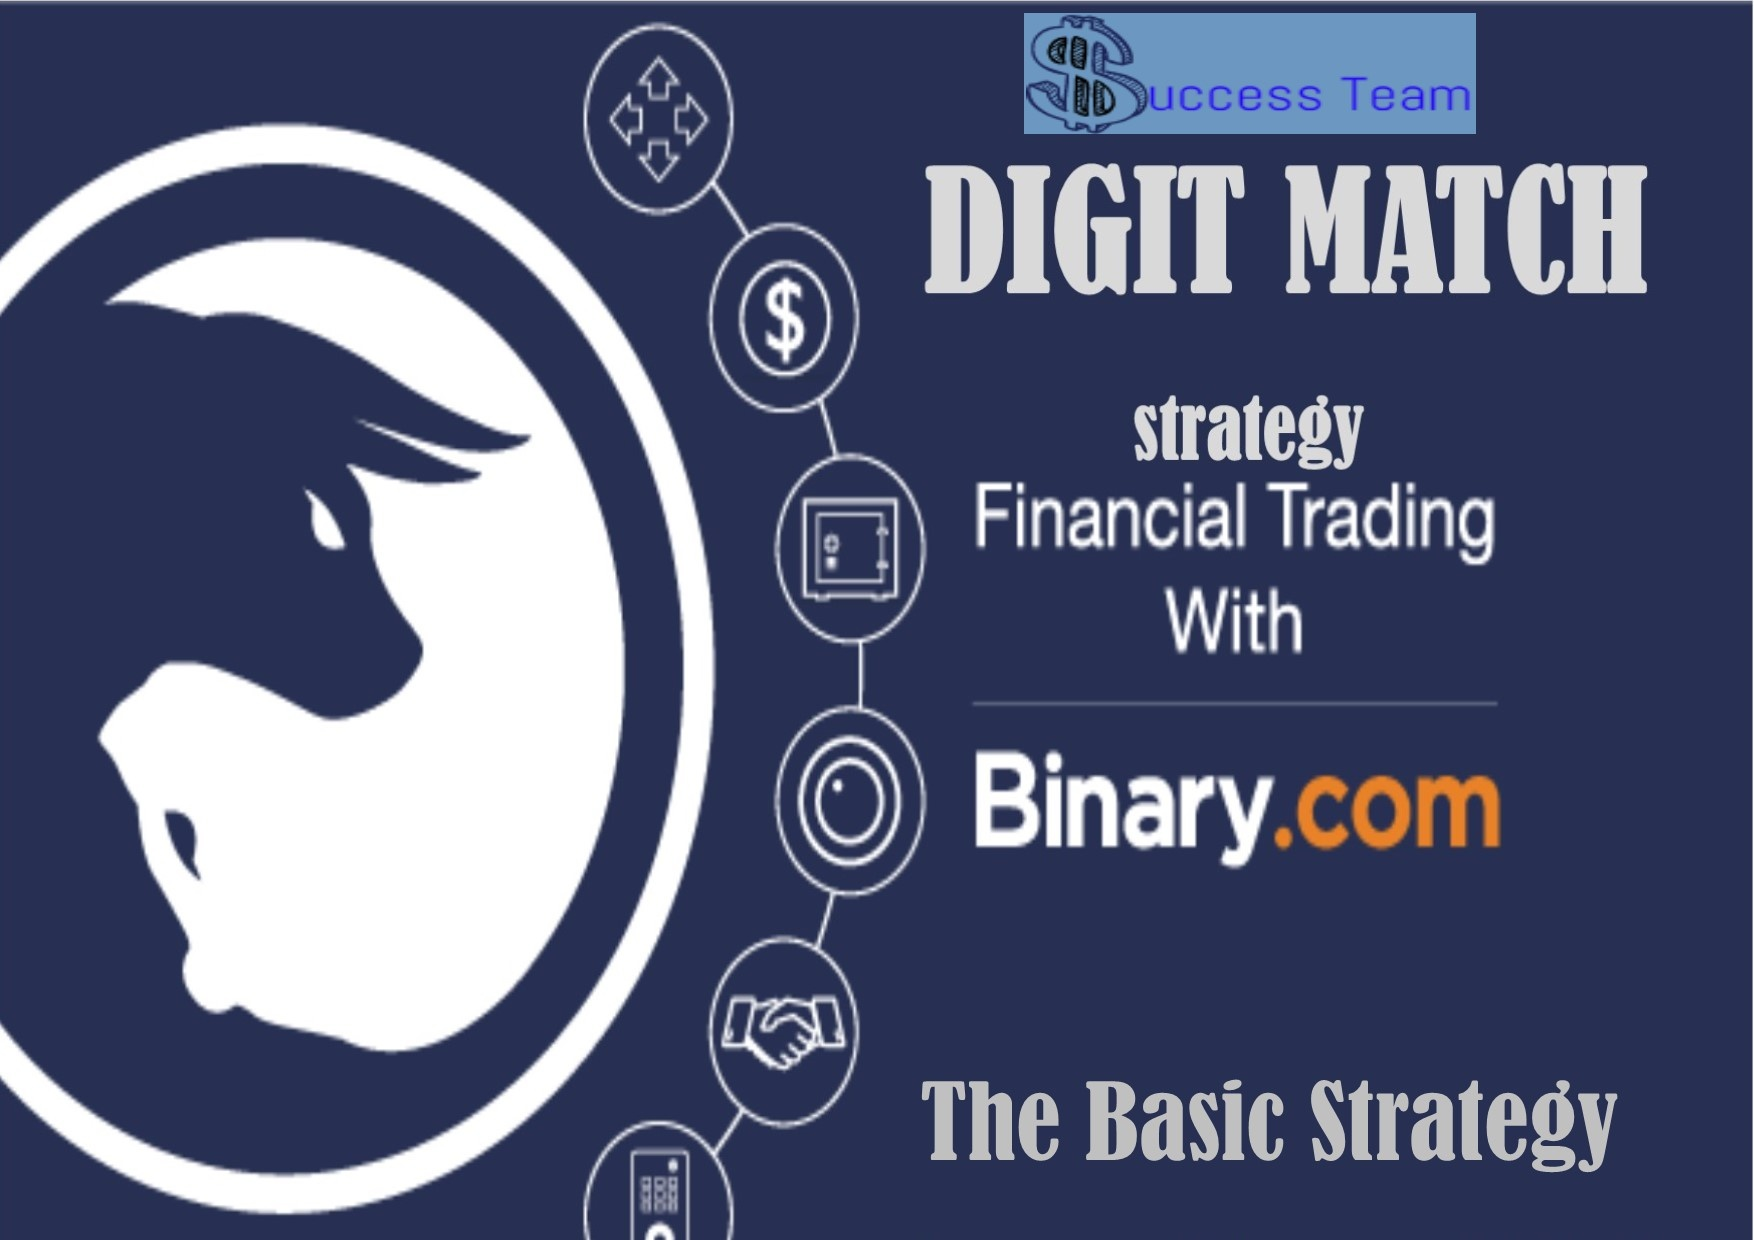 Binarycom Rise Fall strategy earn $1000/day